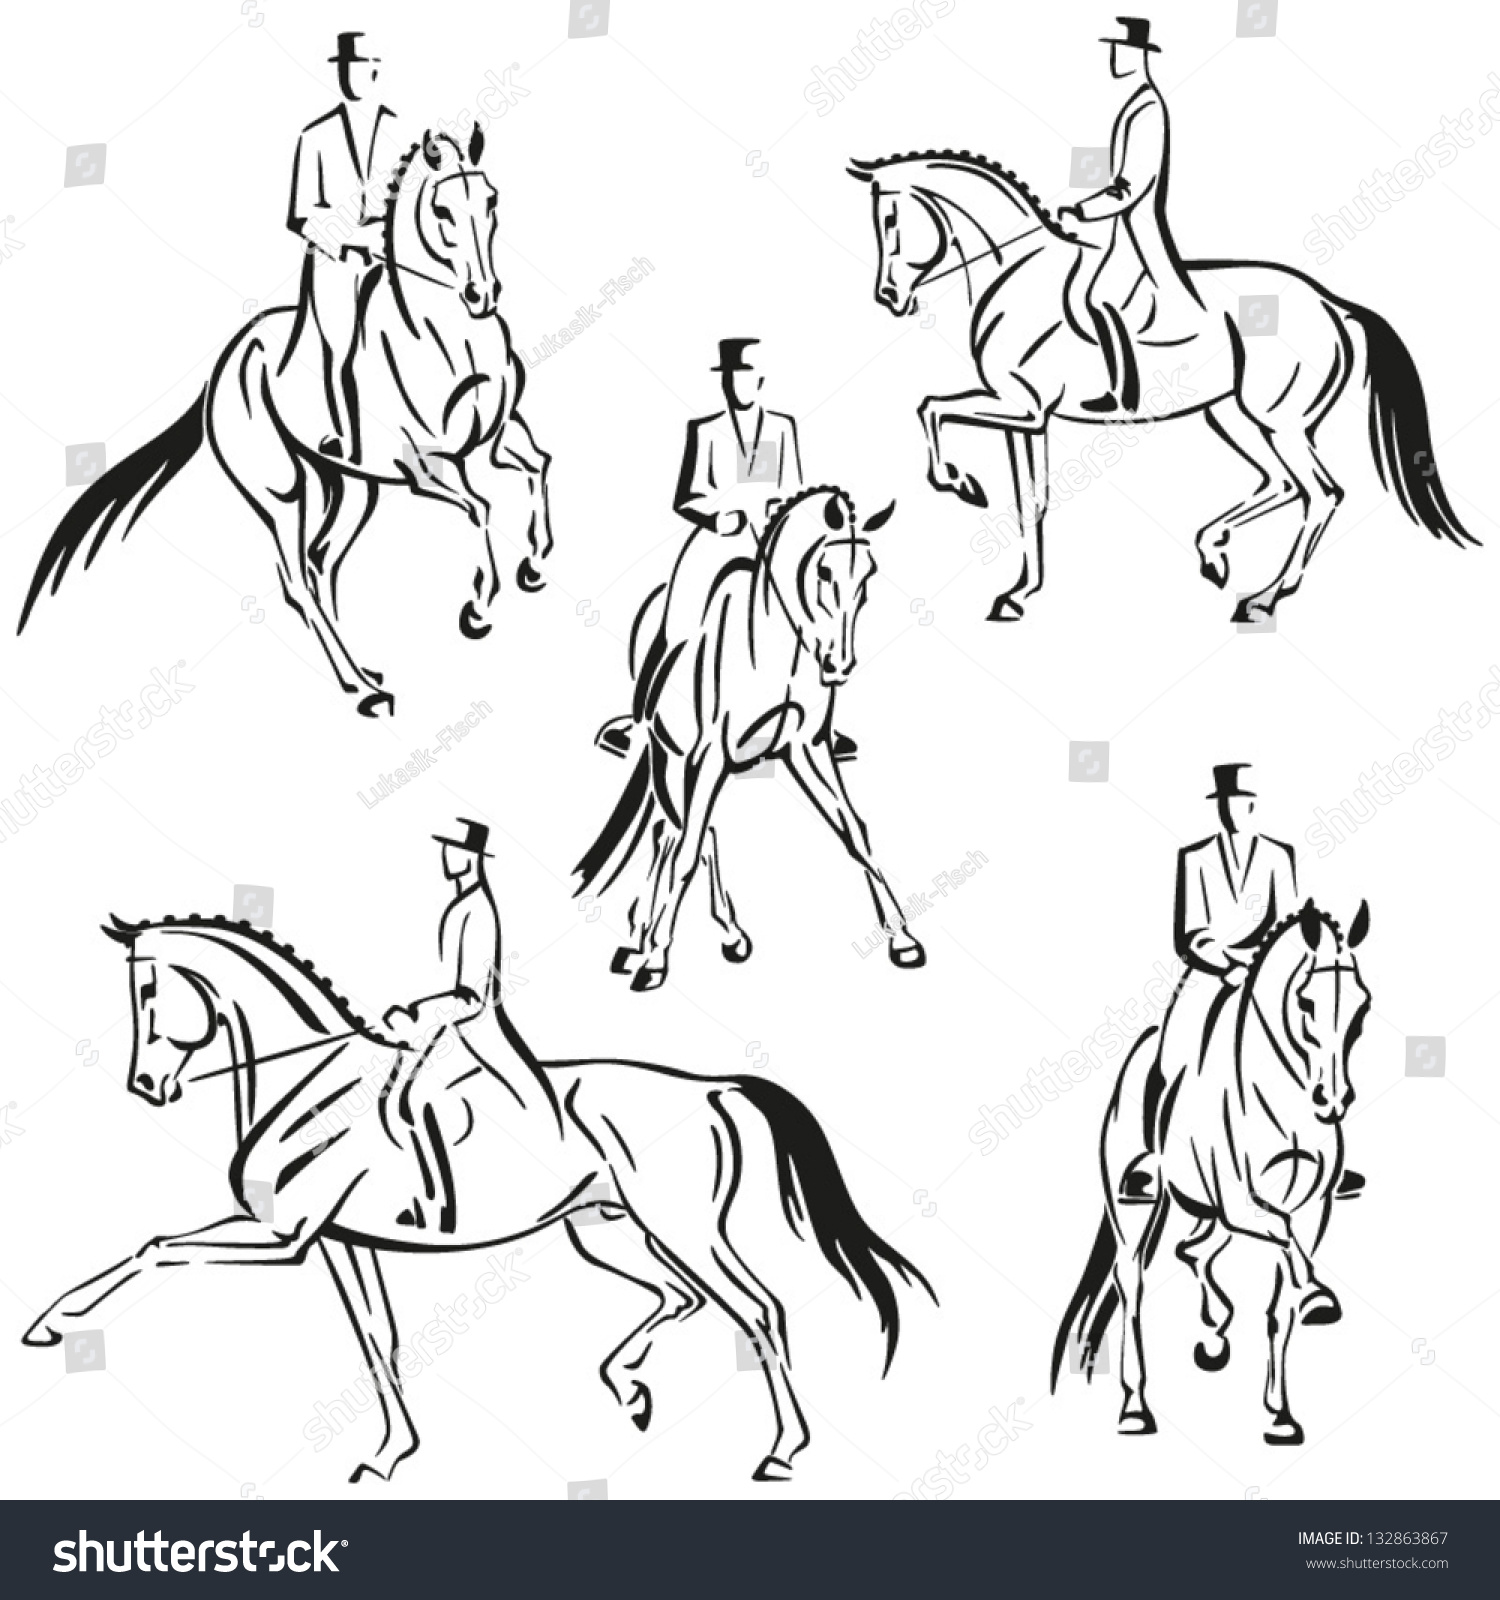 Dressage Riders Simplified silhouettes of horse and rider performing ...